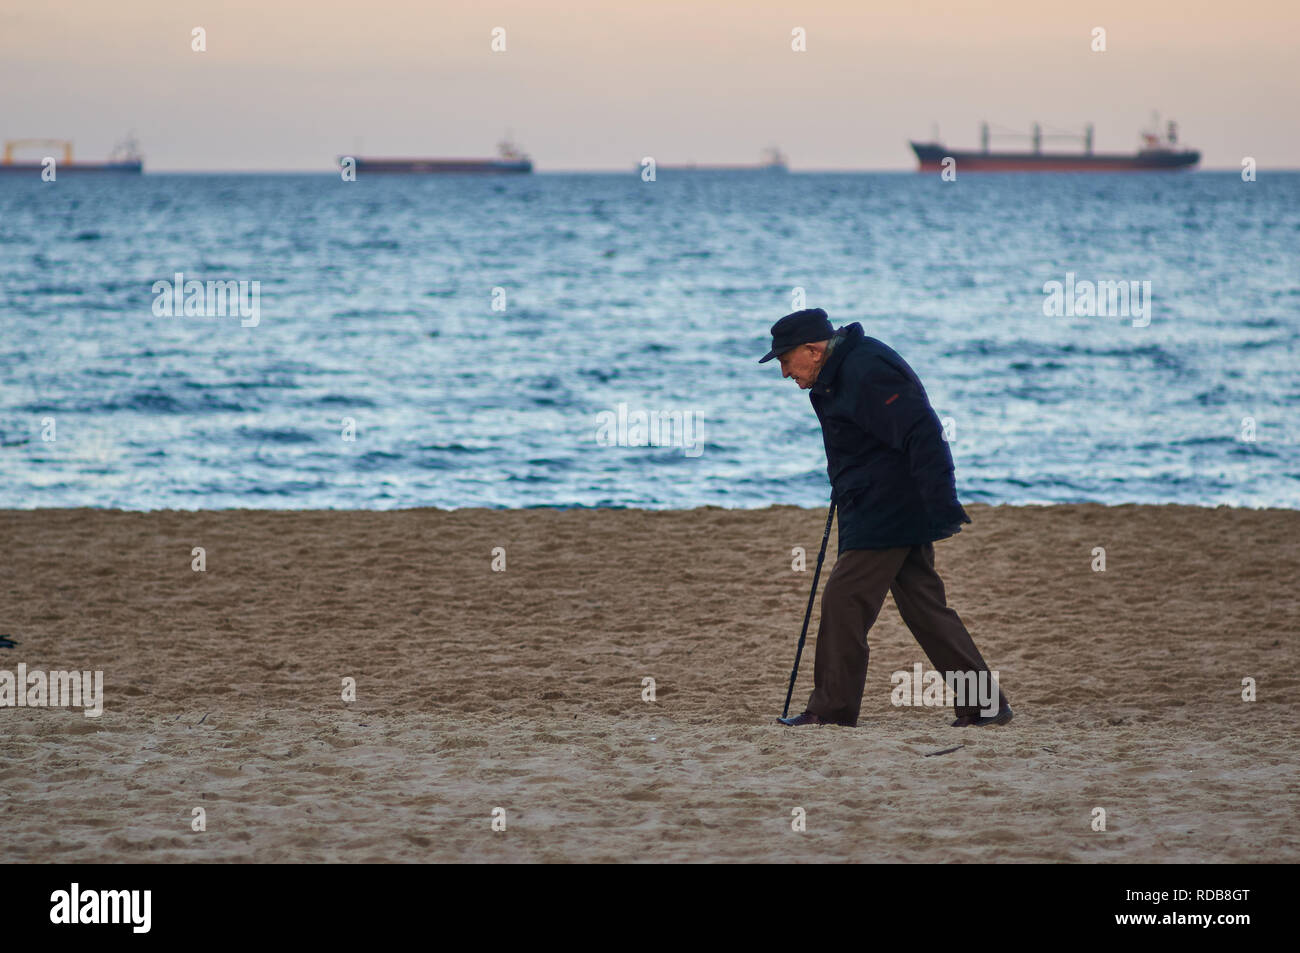 Gdansk, Poland: 26th December 2018 - An old man strolling along a Baltic sea beach with a walking stick, in winter. - Stock Image